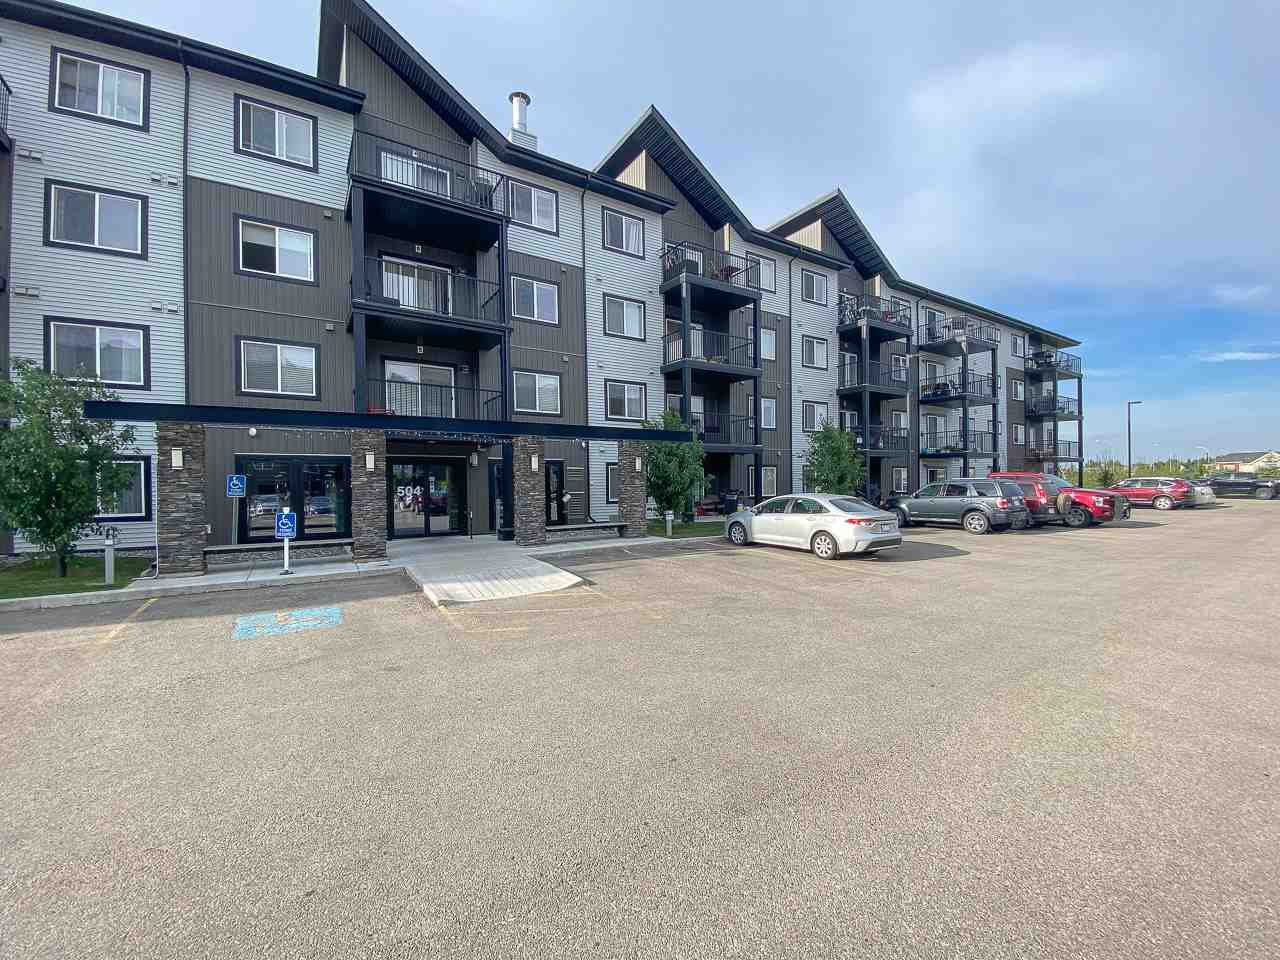 Main Photo: 327 504 ALBANY Way in Edmonton: Zone 27 Condo for sale : MLS®# E4210892